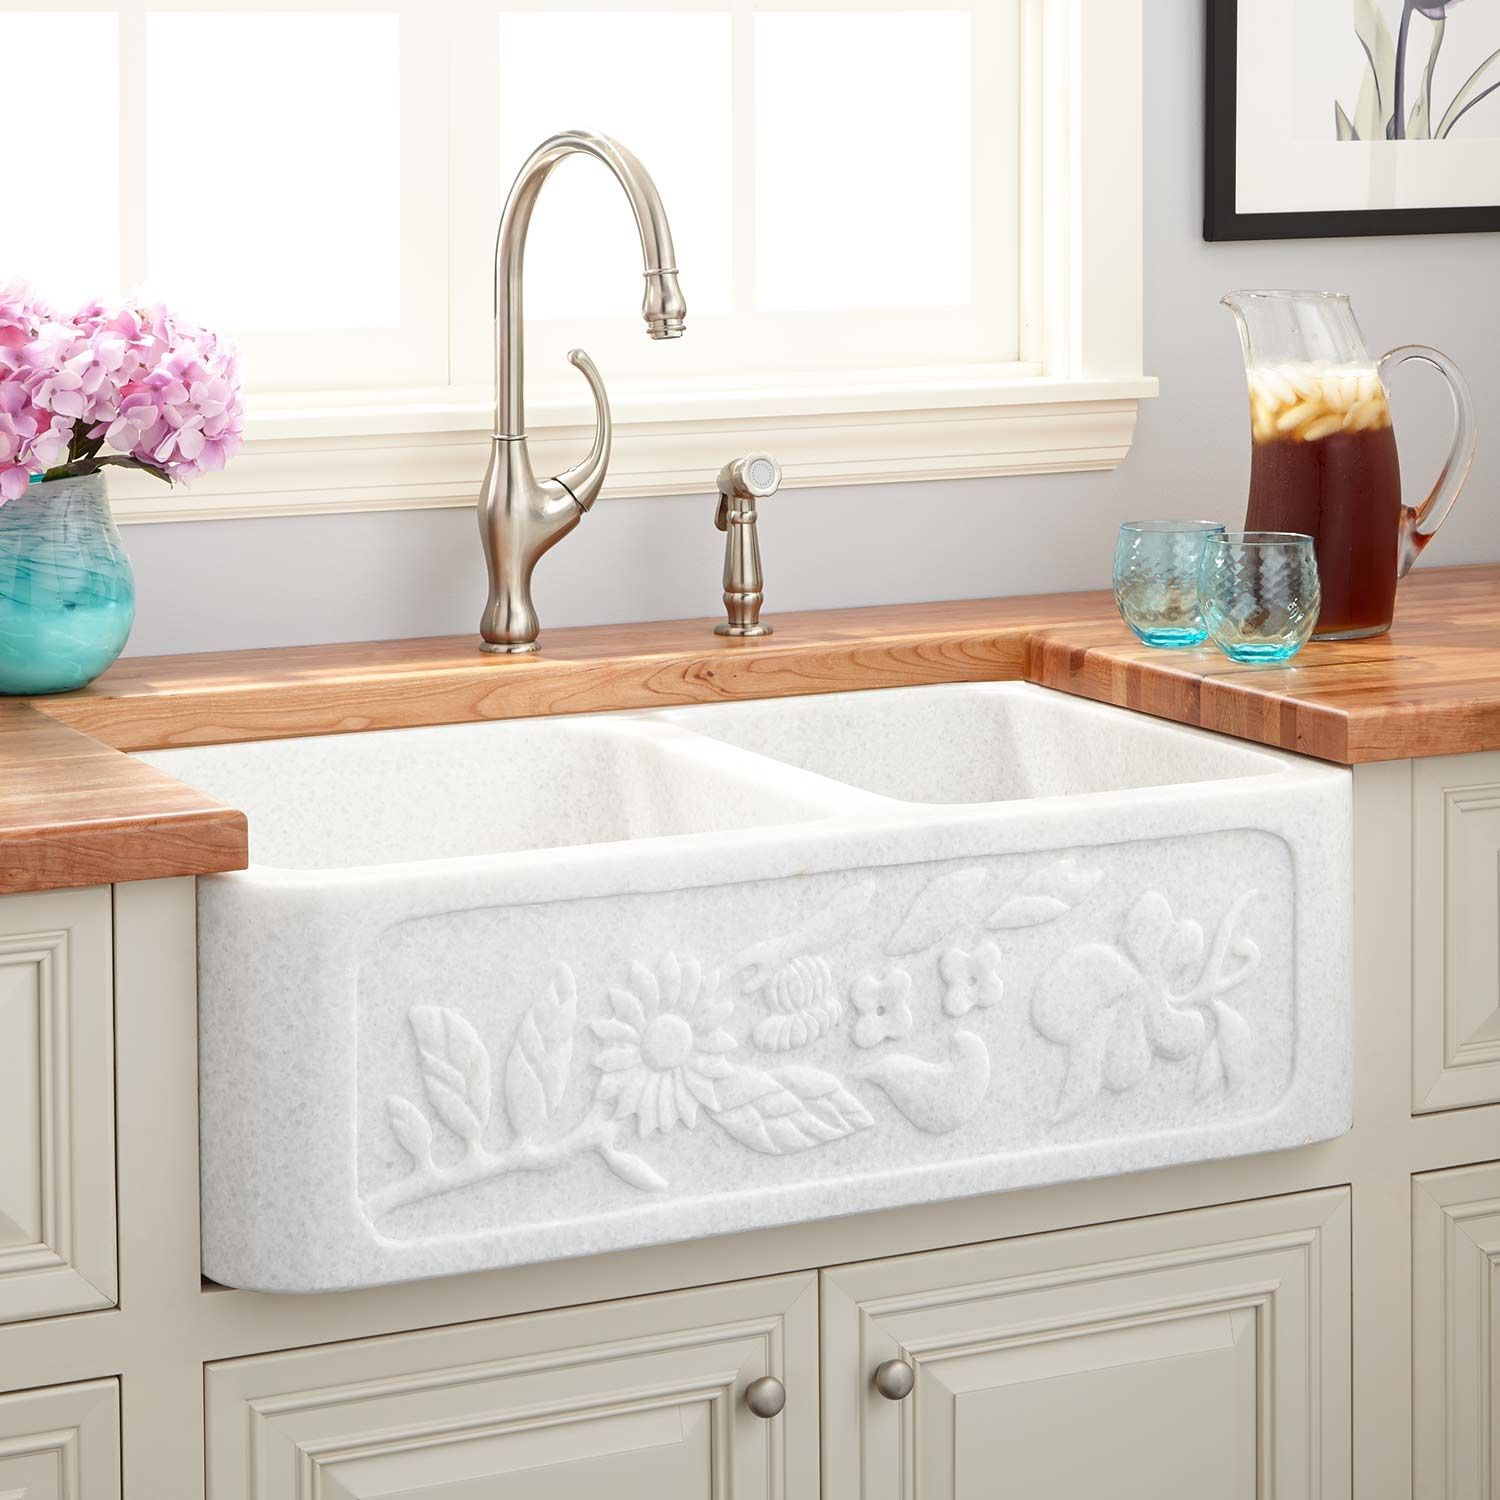 33 Ivy 70 30 Offset Double Bowl Polished Marble Farmhouse Sink